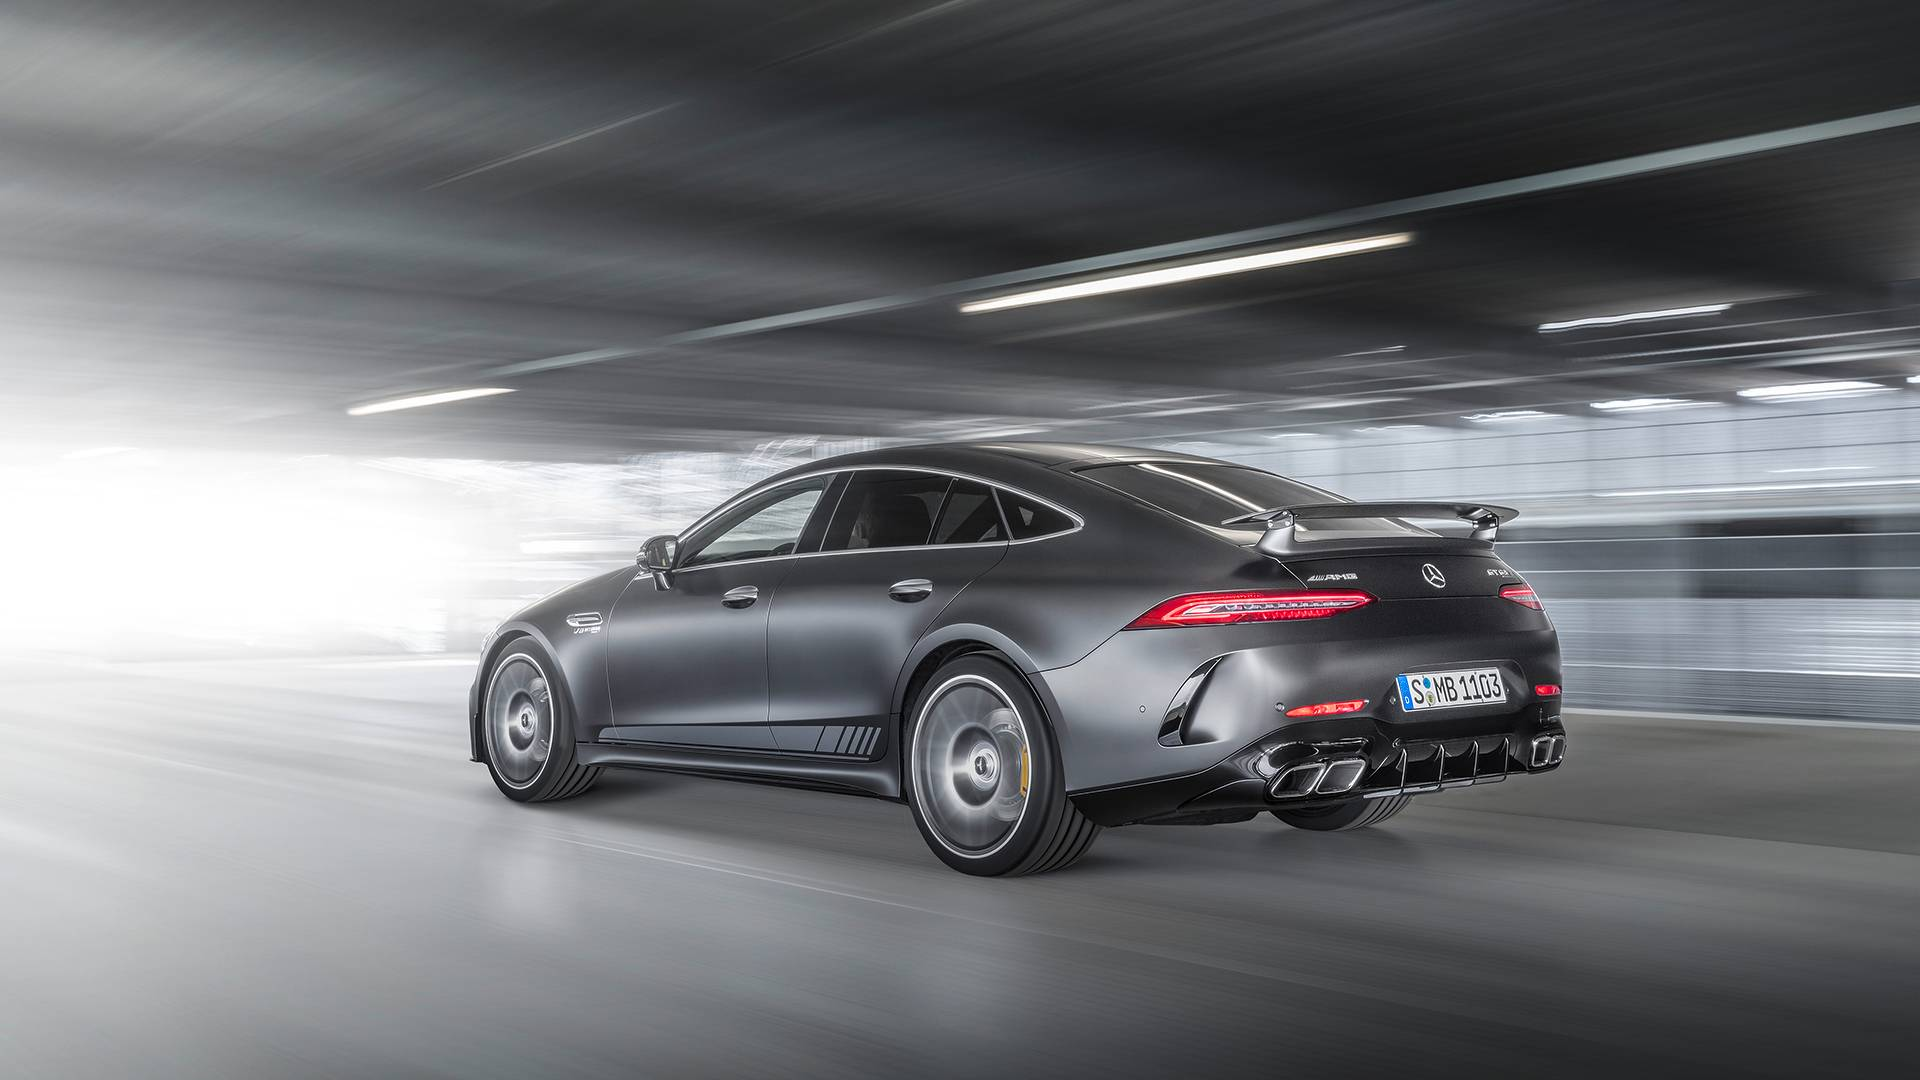 mercedes amg gt 63 s 4matic edition 1 priced at eur. Black Bedroom Furniture Sets. Home Design Ideas